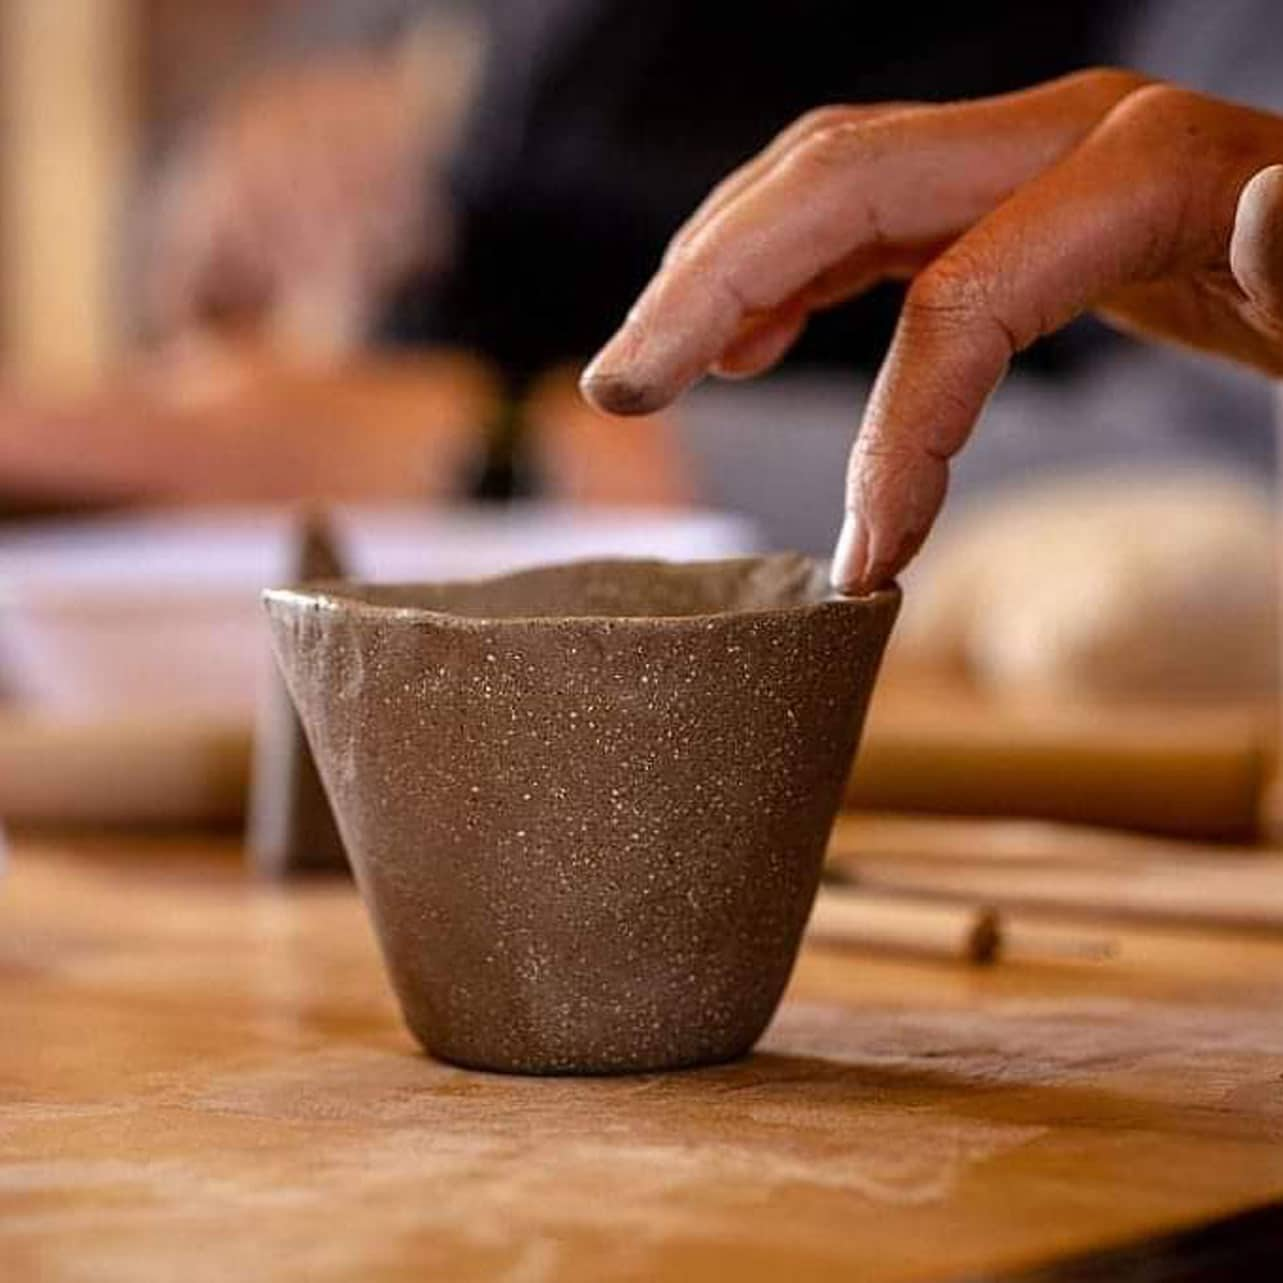 finger and small pot